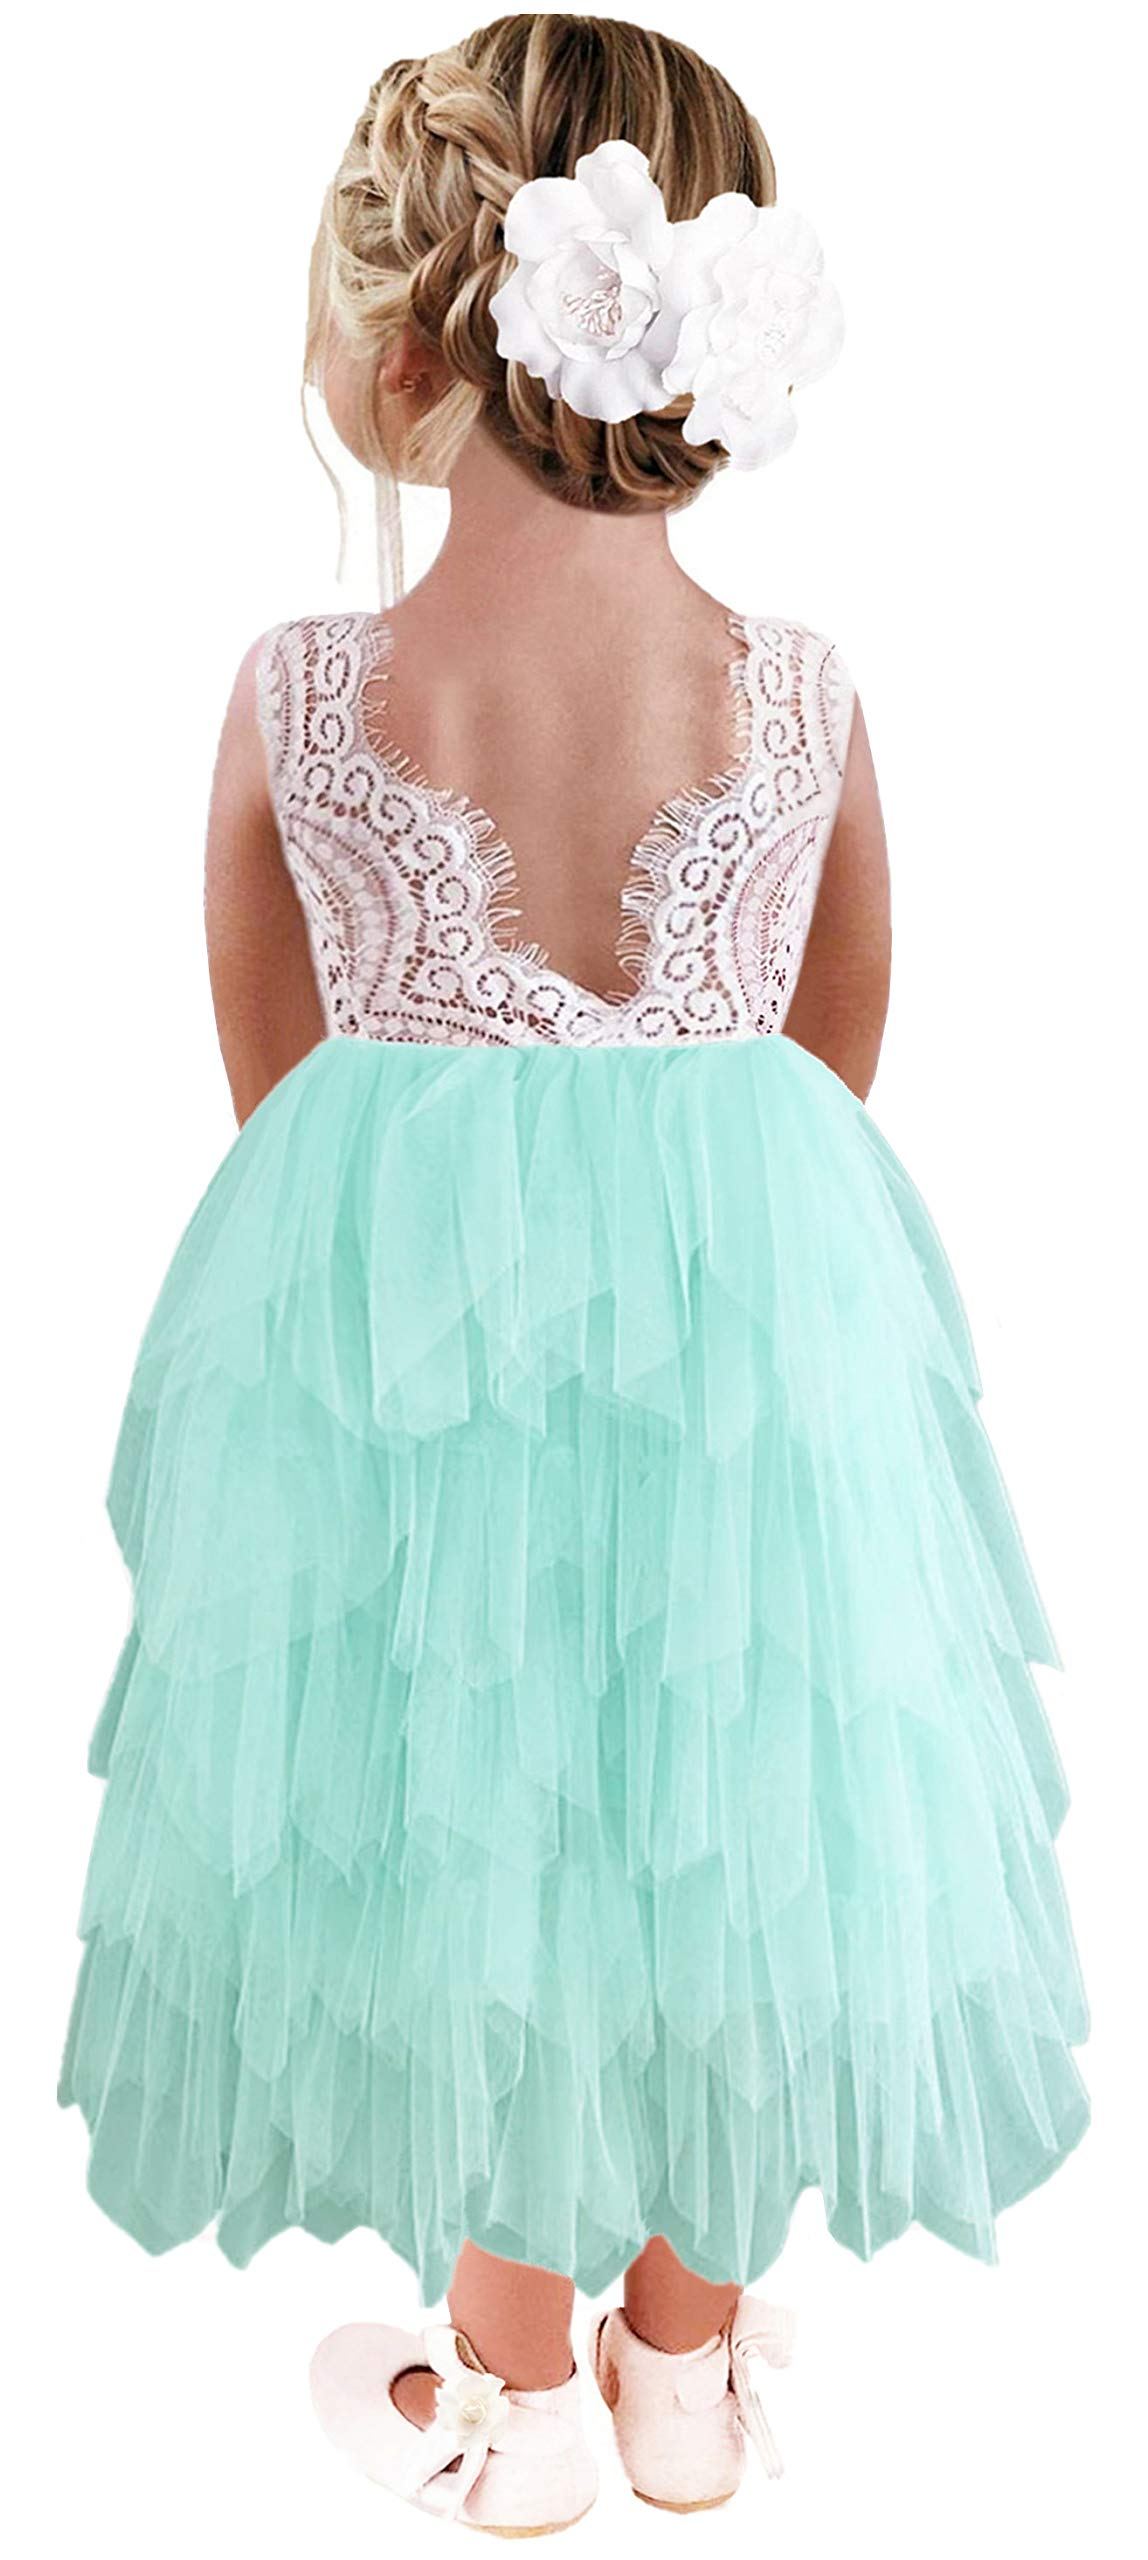 2Bunnies Girl Lace Back A-Line Tutu Tulle Flower Girl Dress